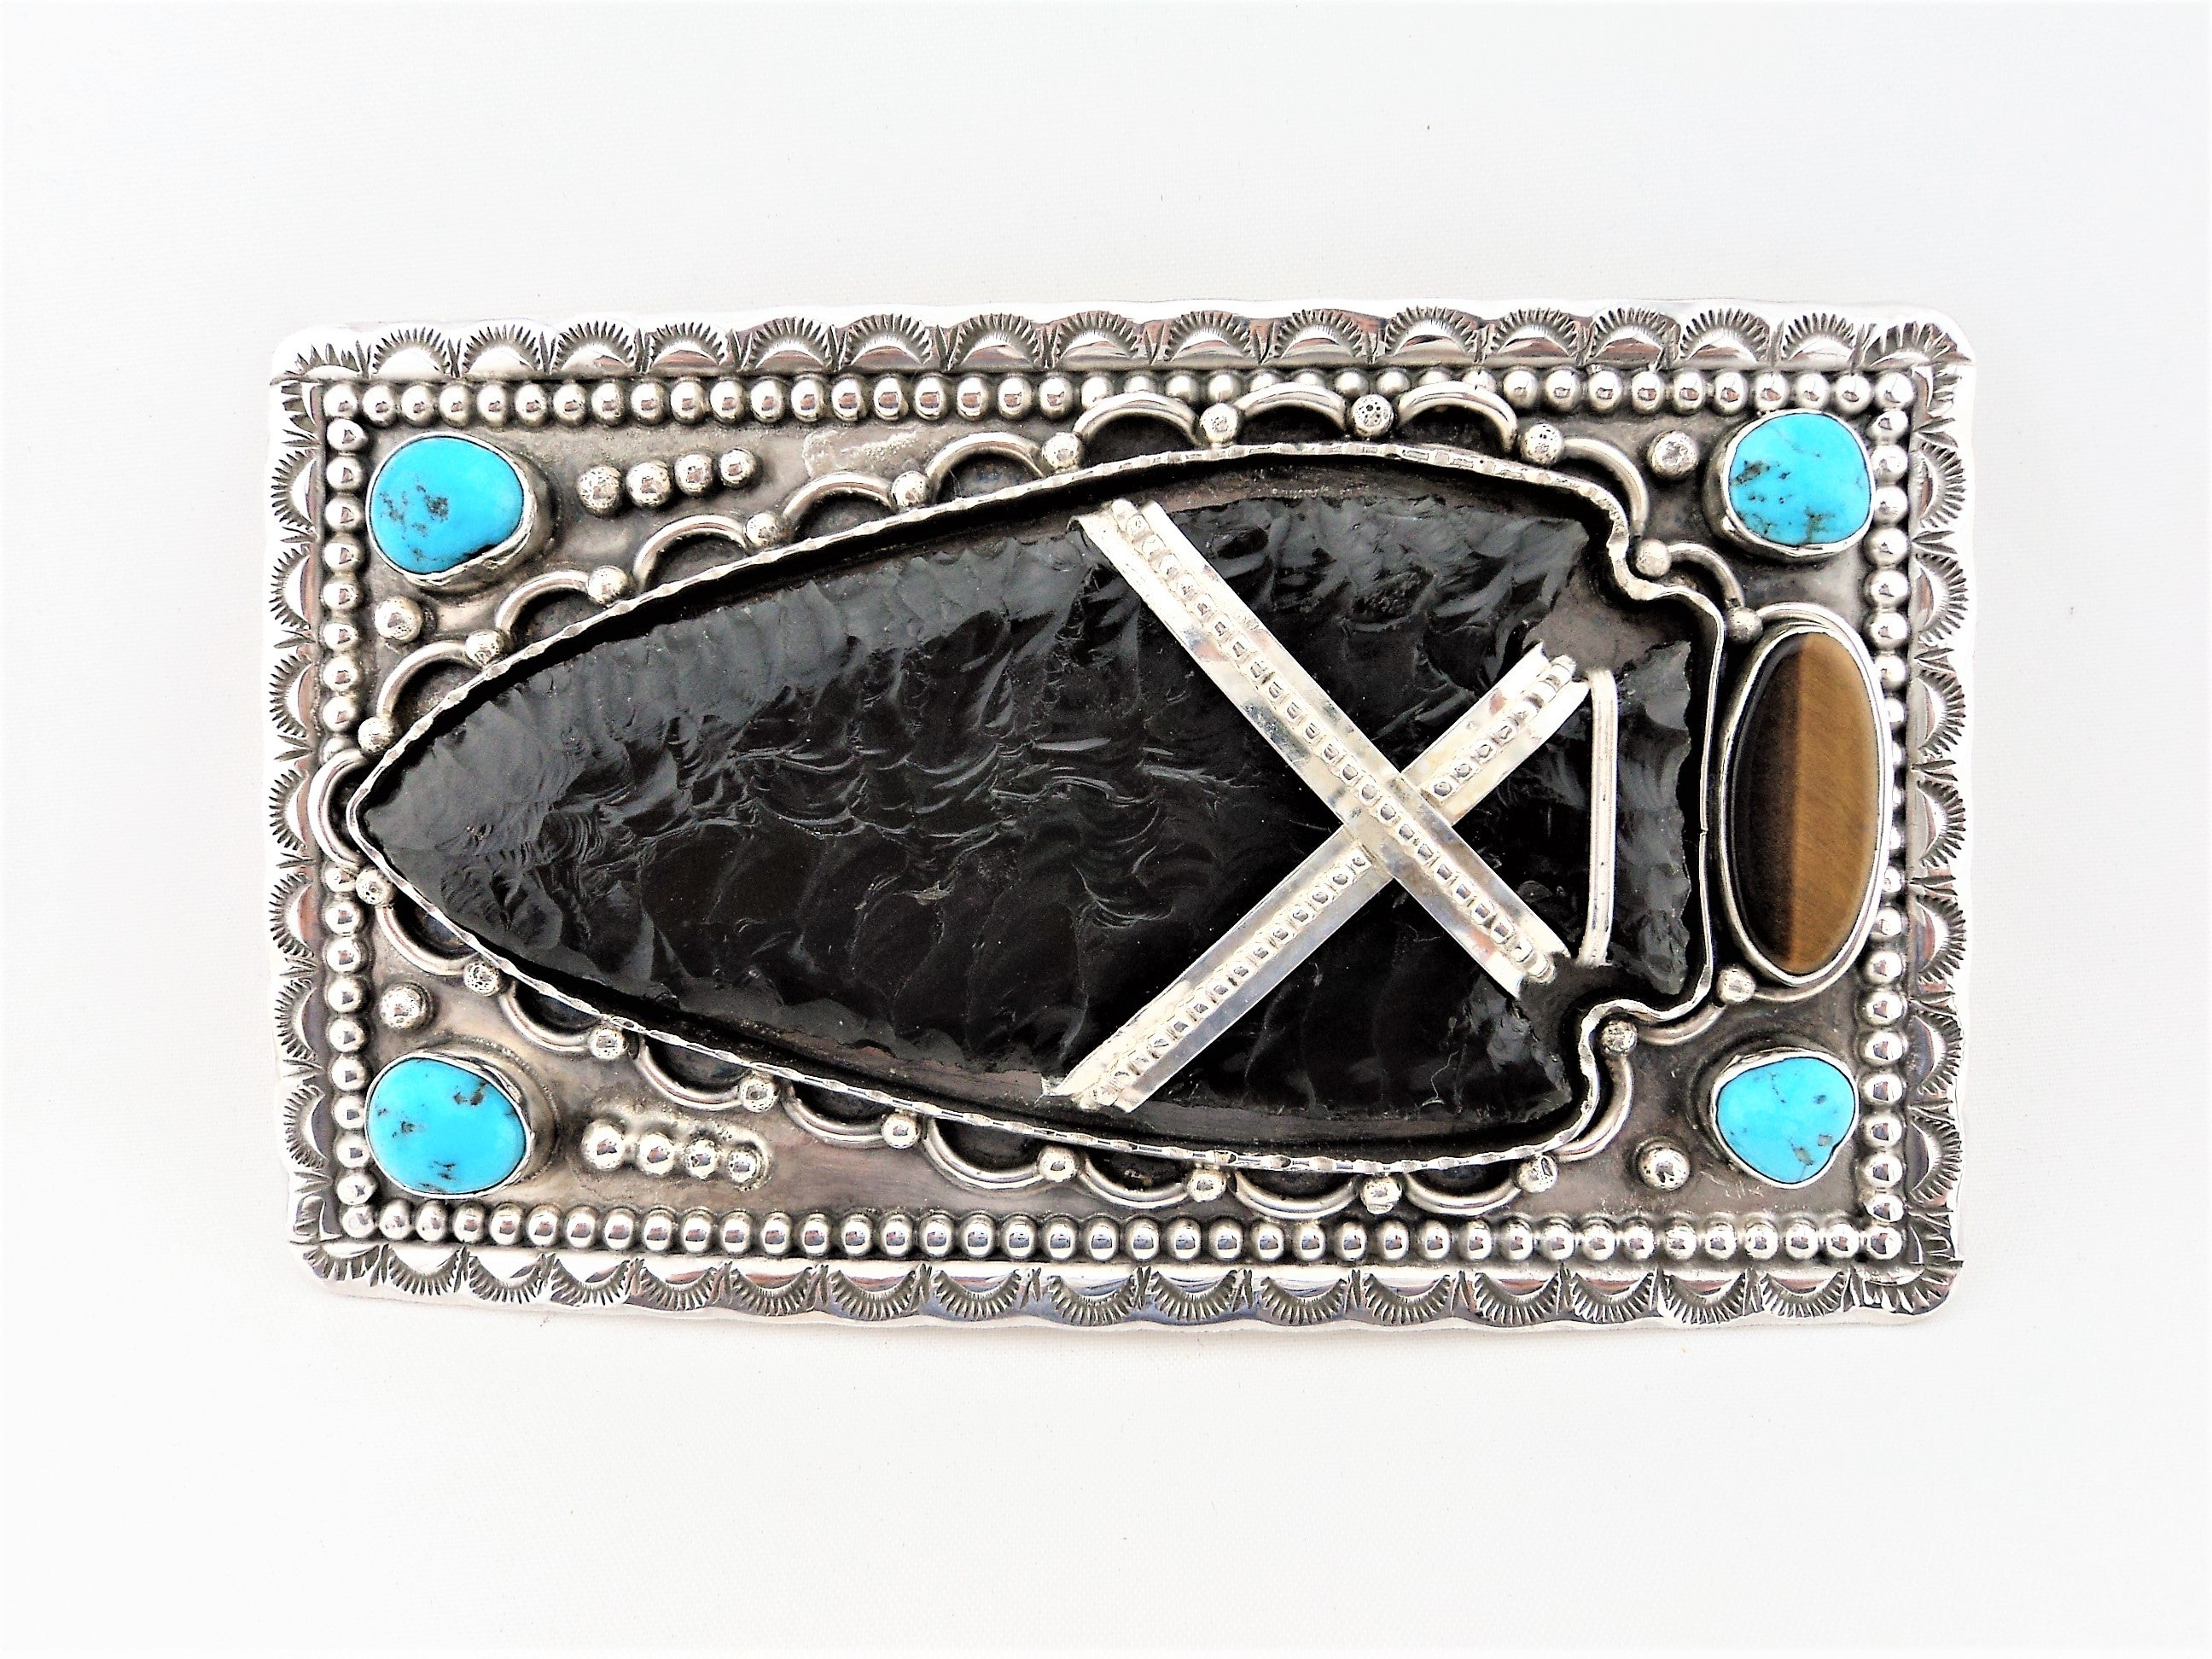 Native American Obsidian Arrowhead and Sterling Silver Belt Buckle